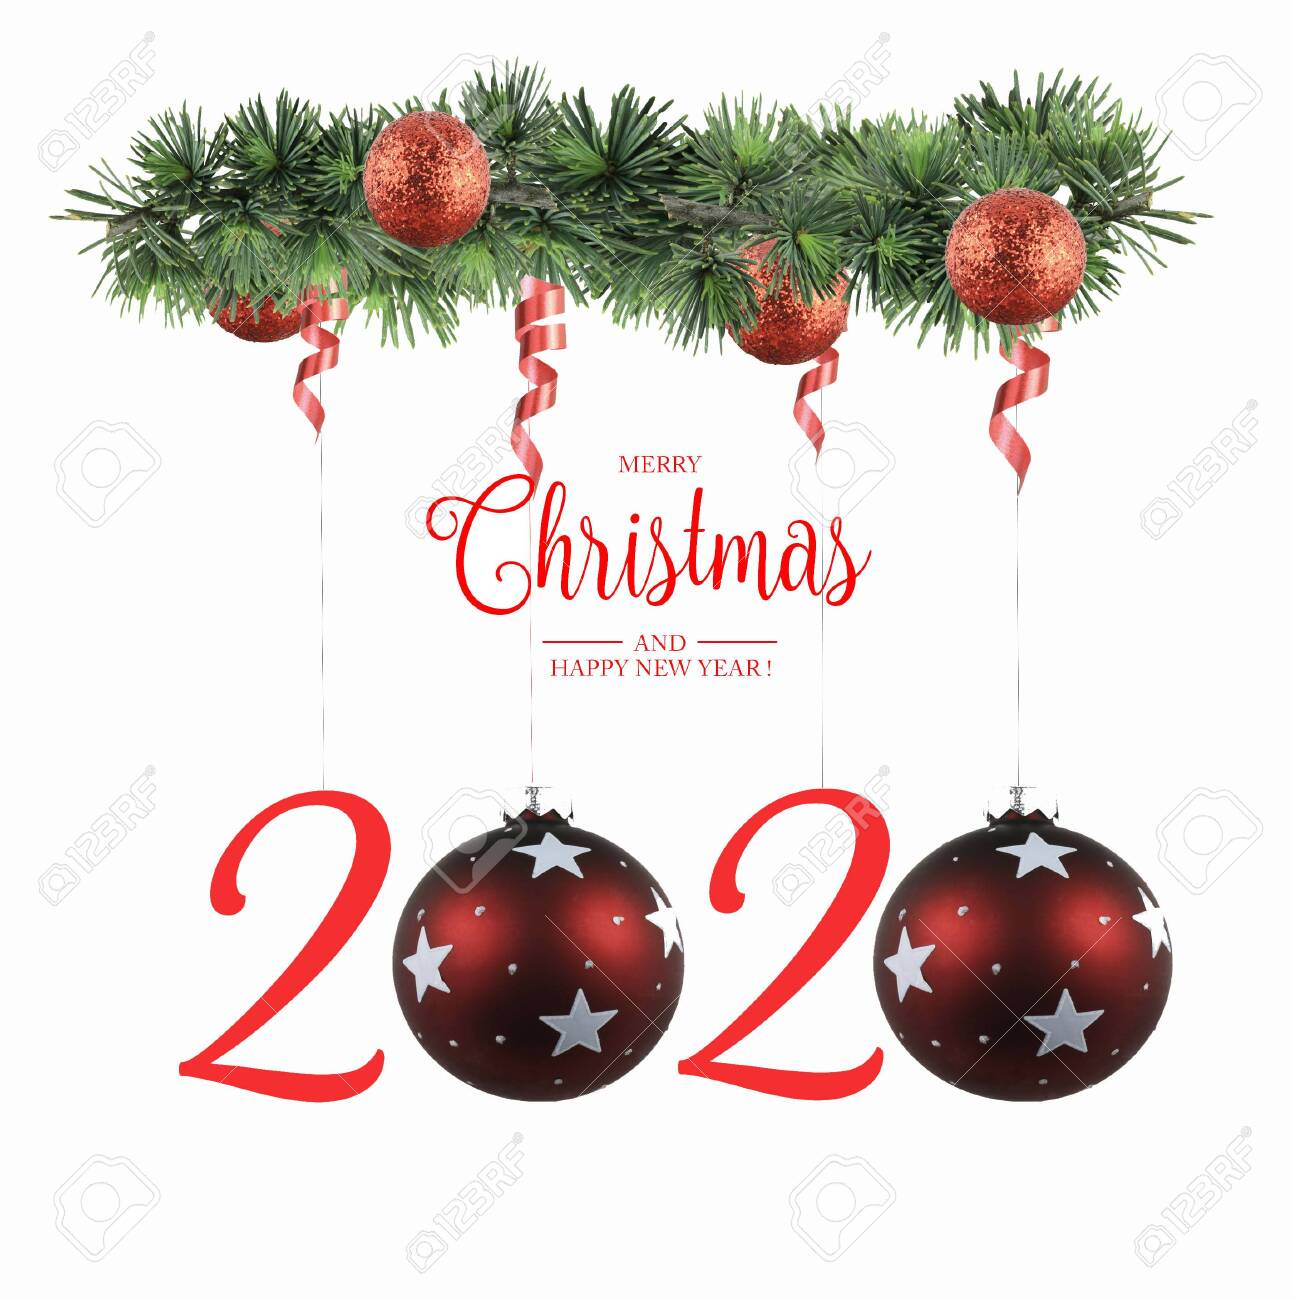 Christmas Cards 2020 Happy New Year 2020 Greeting Cards Stock Photo, Picture And